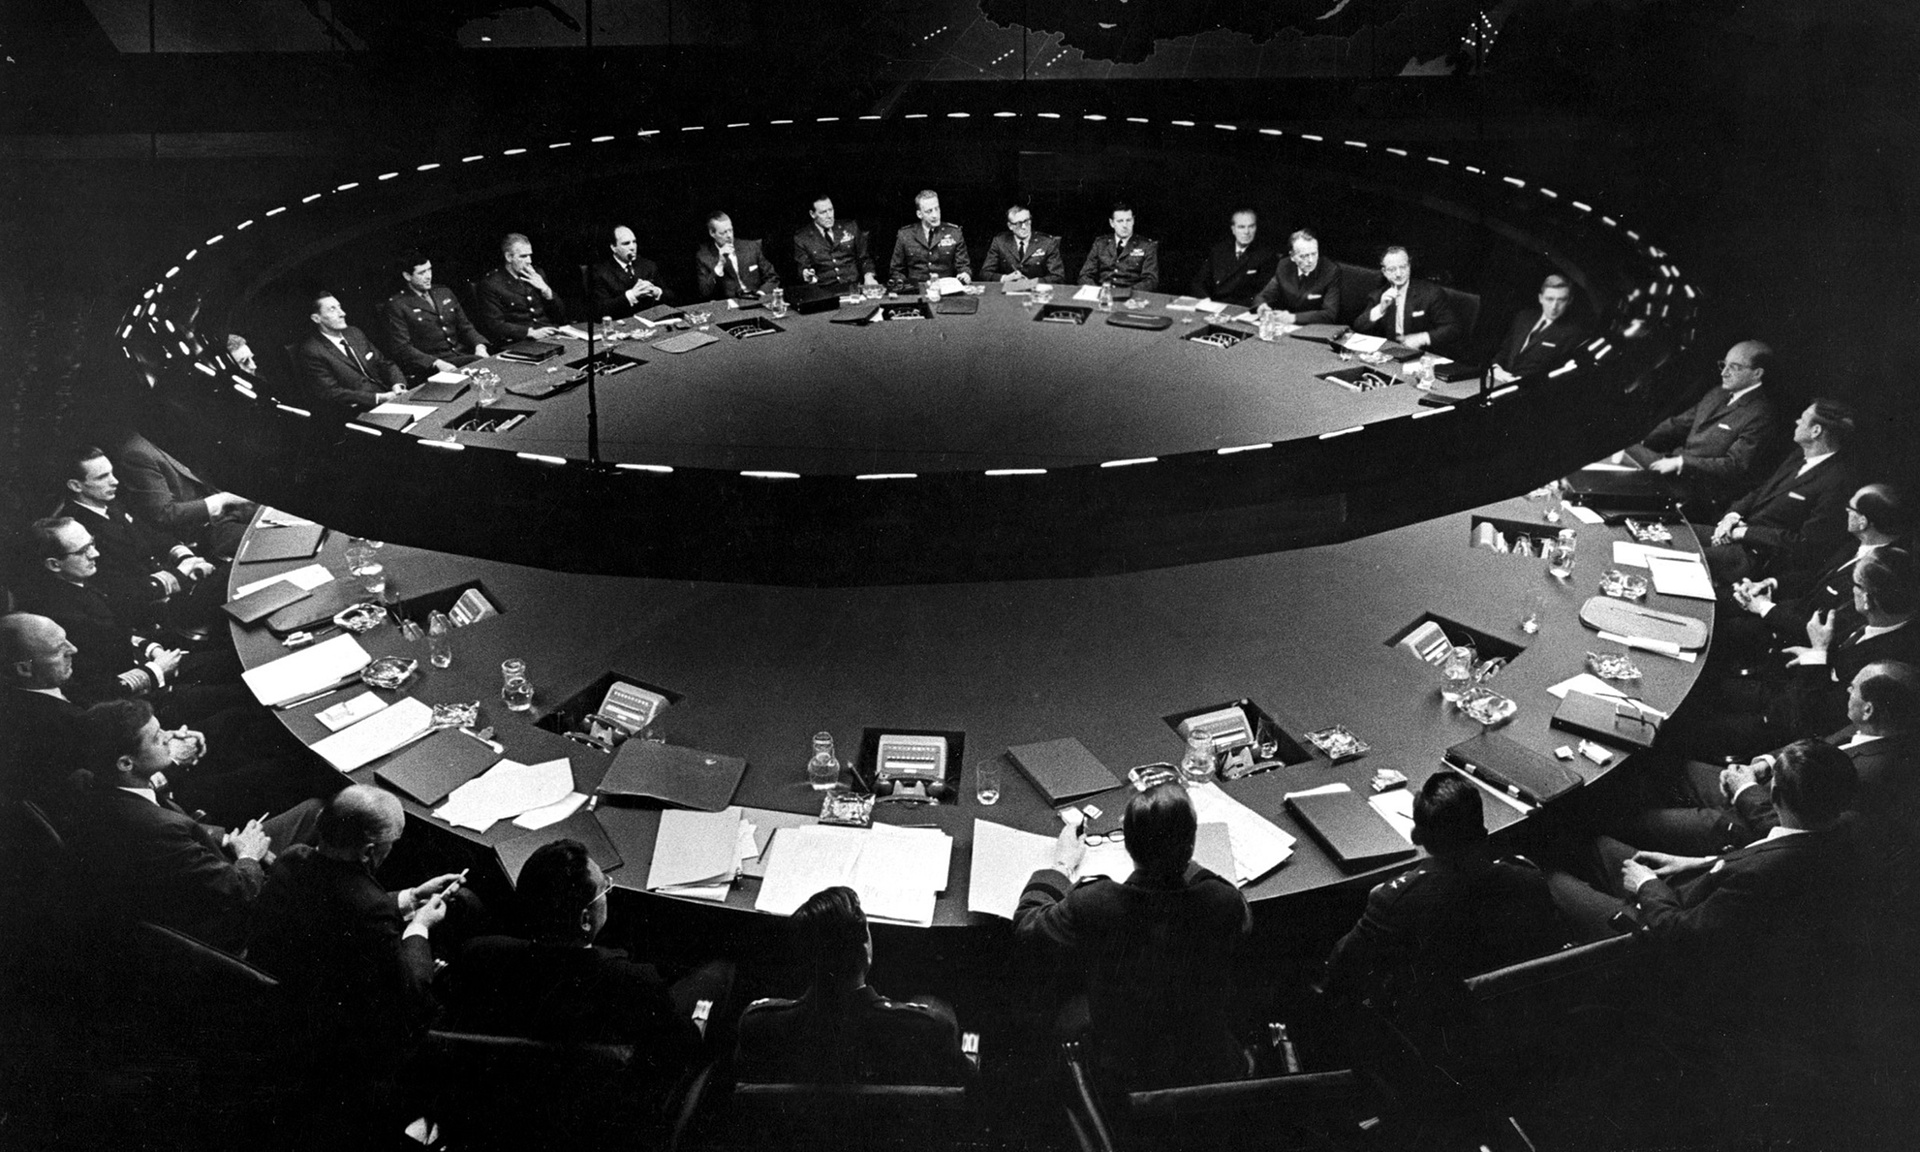 The War Room in Stanley Kubrick's Dr Strangelove. One of cinema's most influential film sets designed by Ken Adam